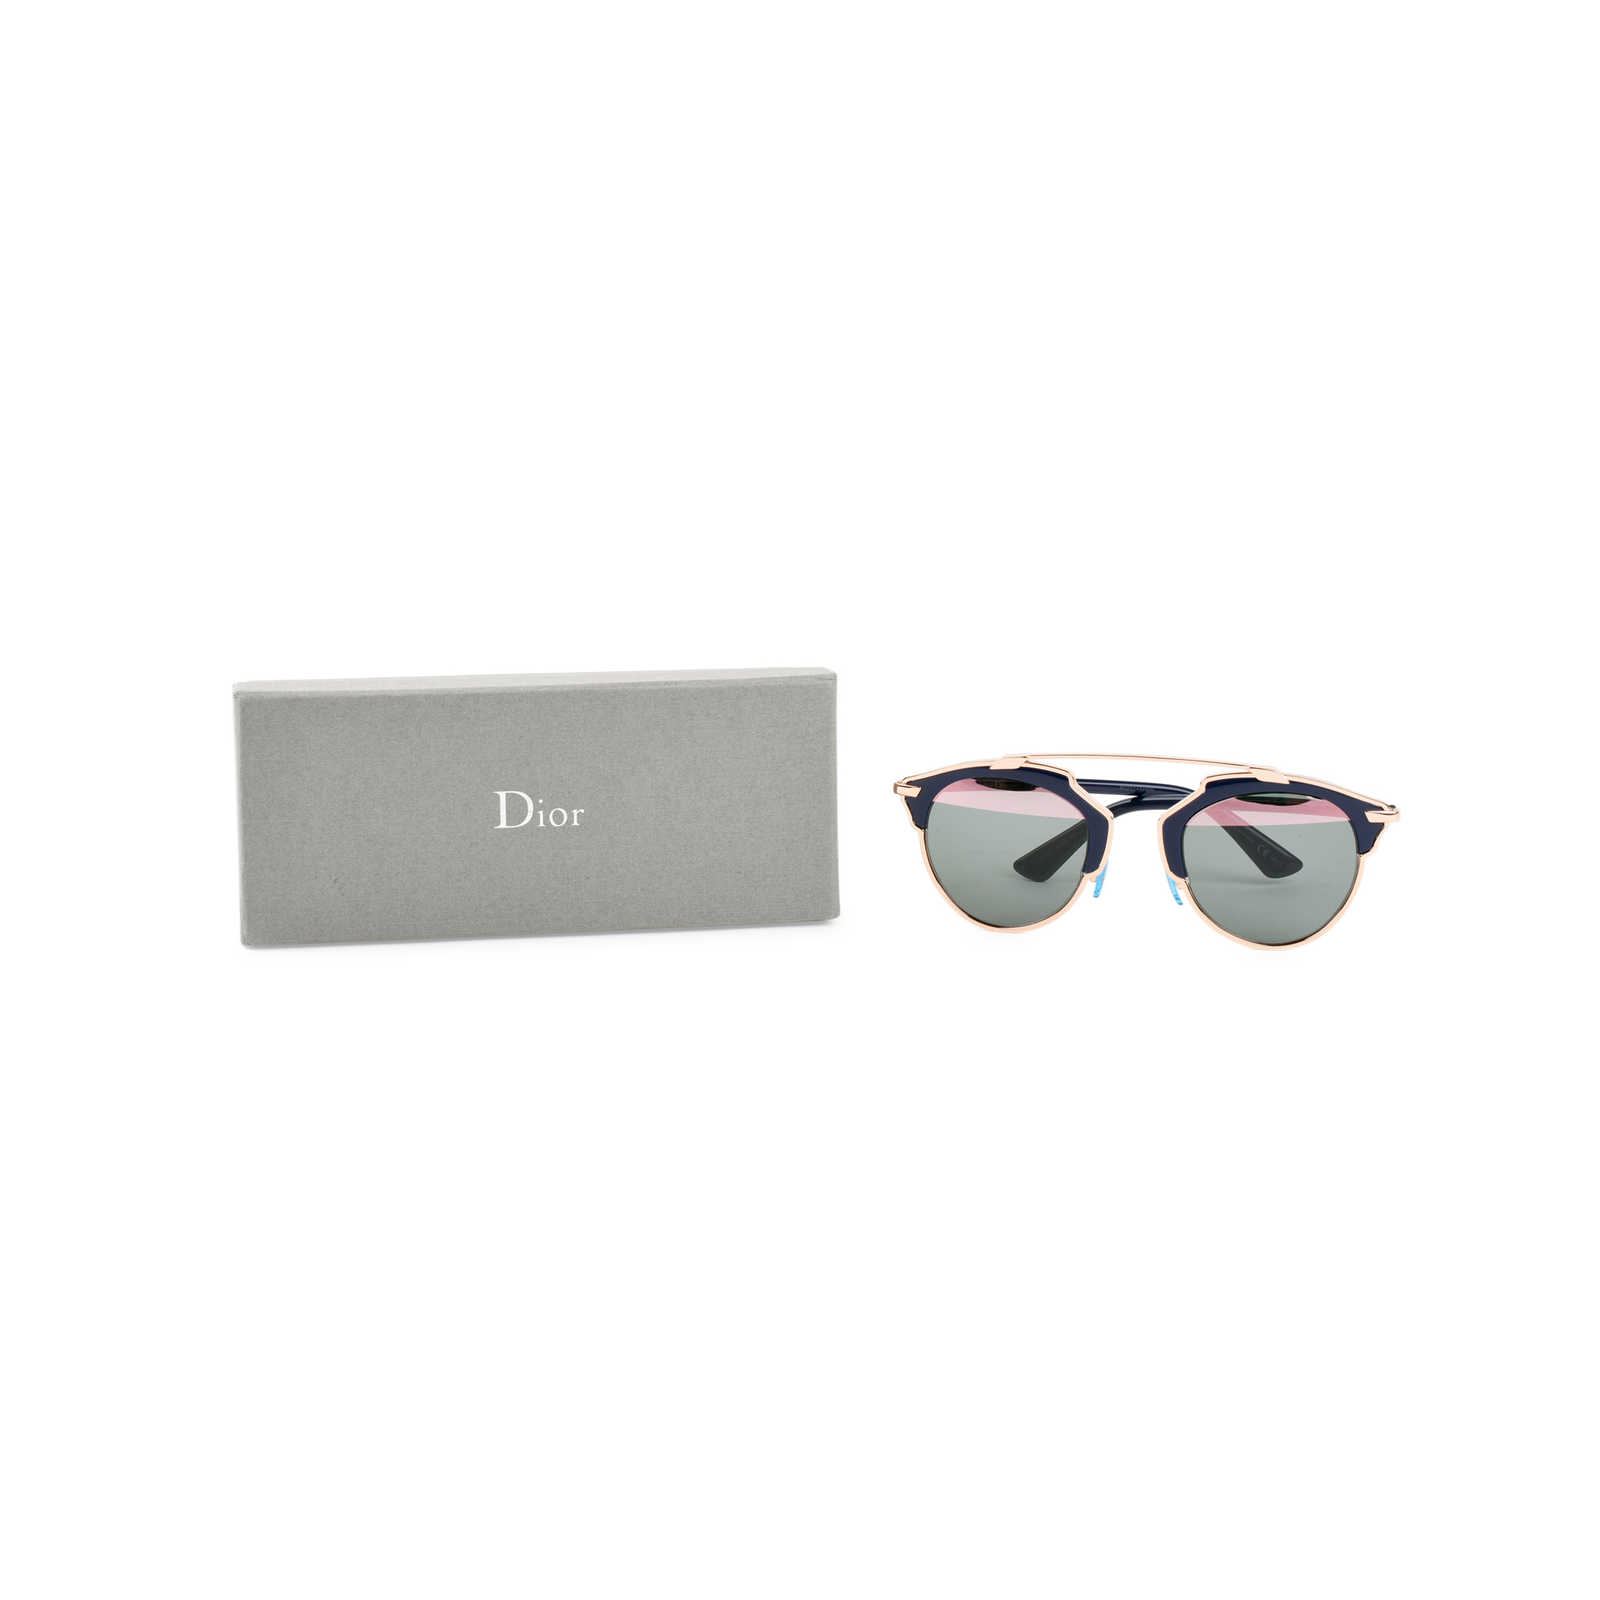 ed428eee0b75 ... Authentic Second Hand Christian Dior So Real Sunglasses (PSS-070-00003)  ...